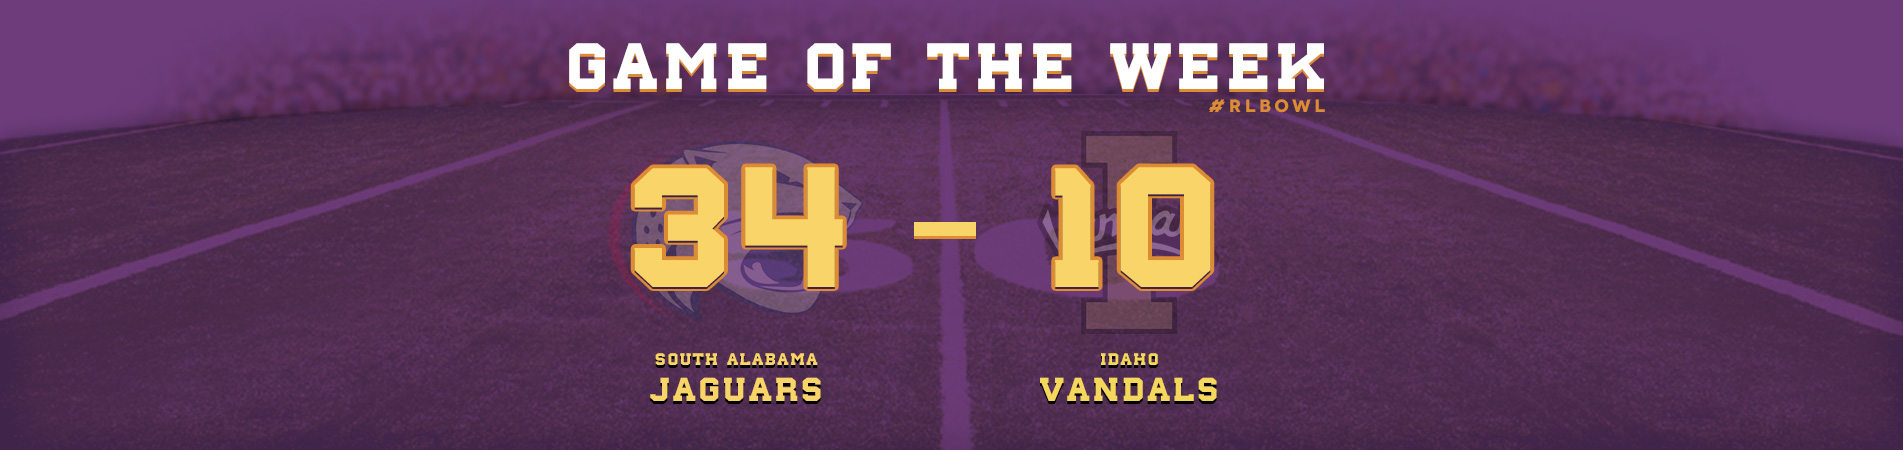 Jaguars Win Over the Vandals - R+L Carriers New Orleans Bowl